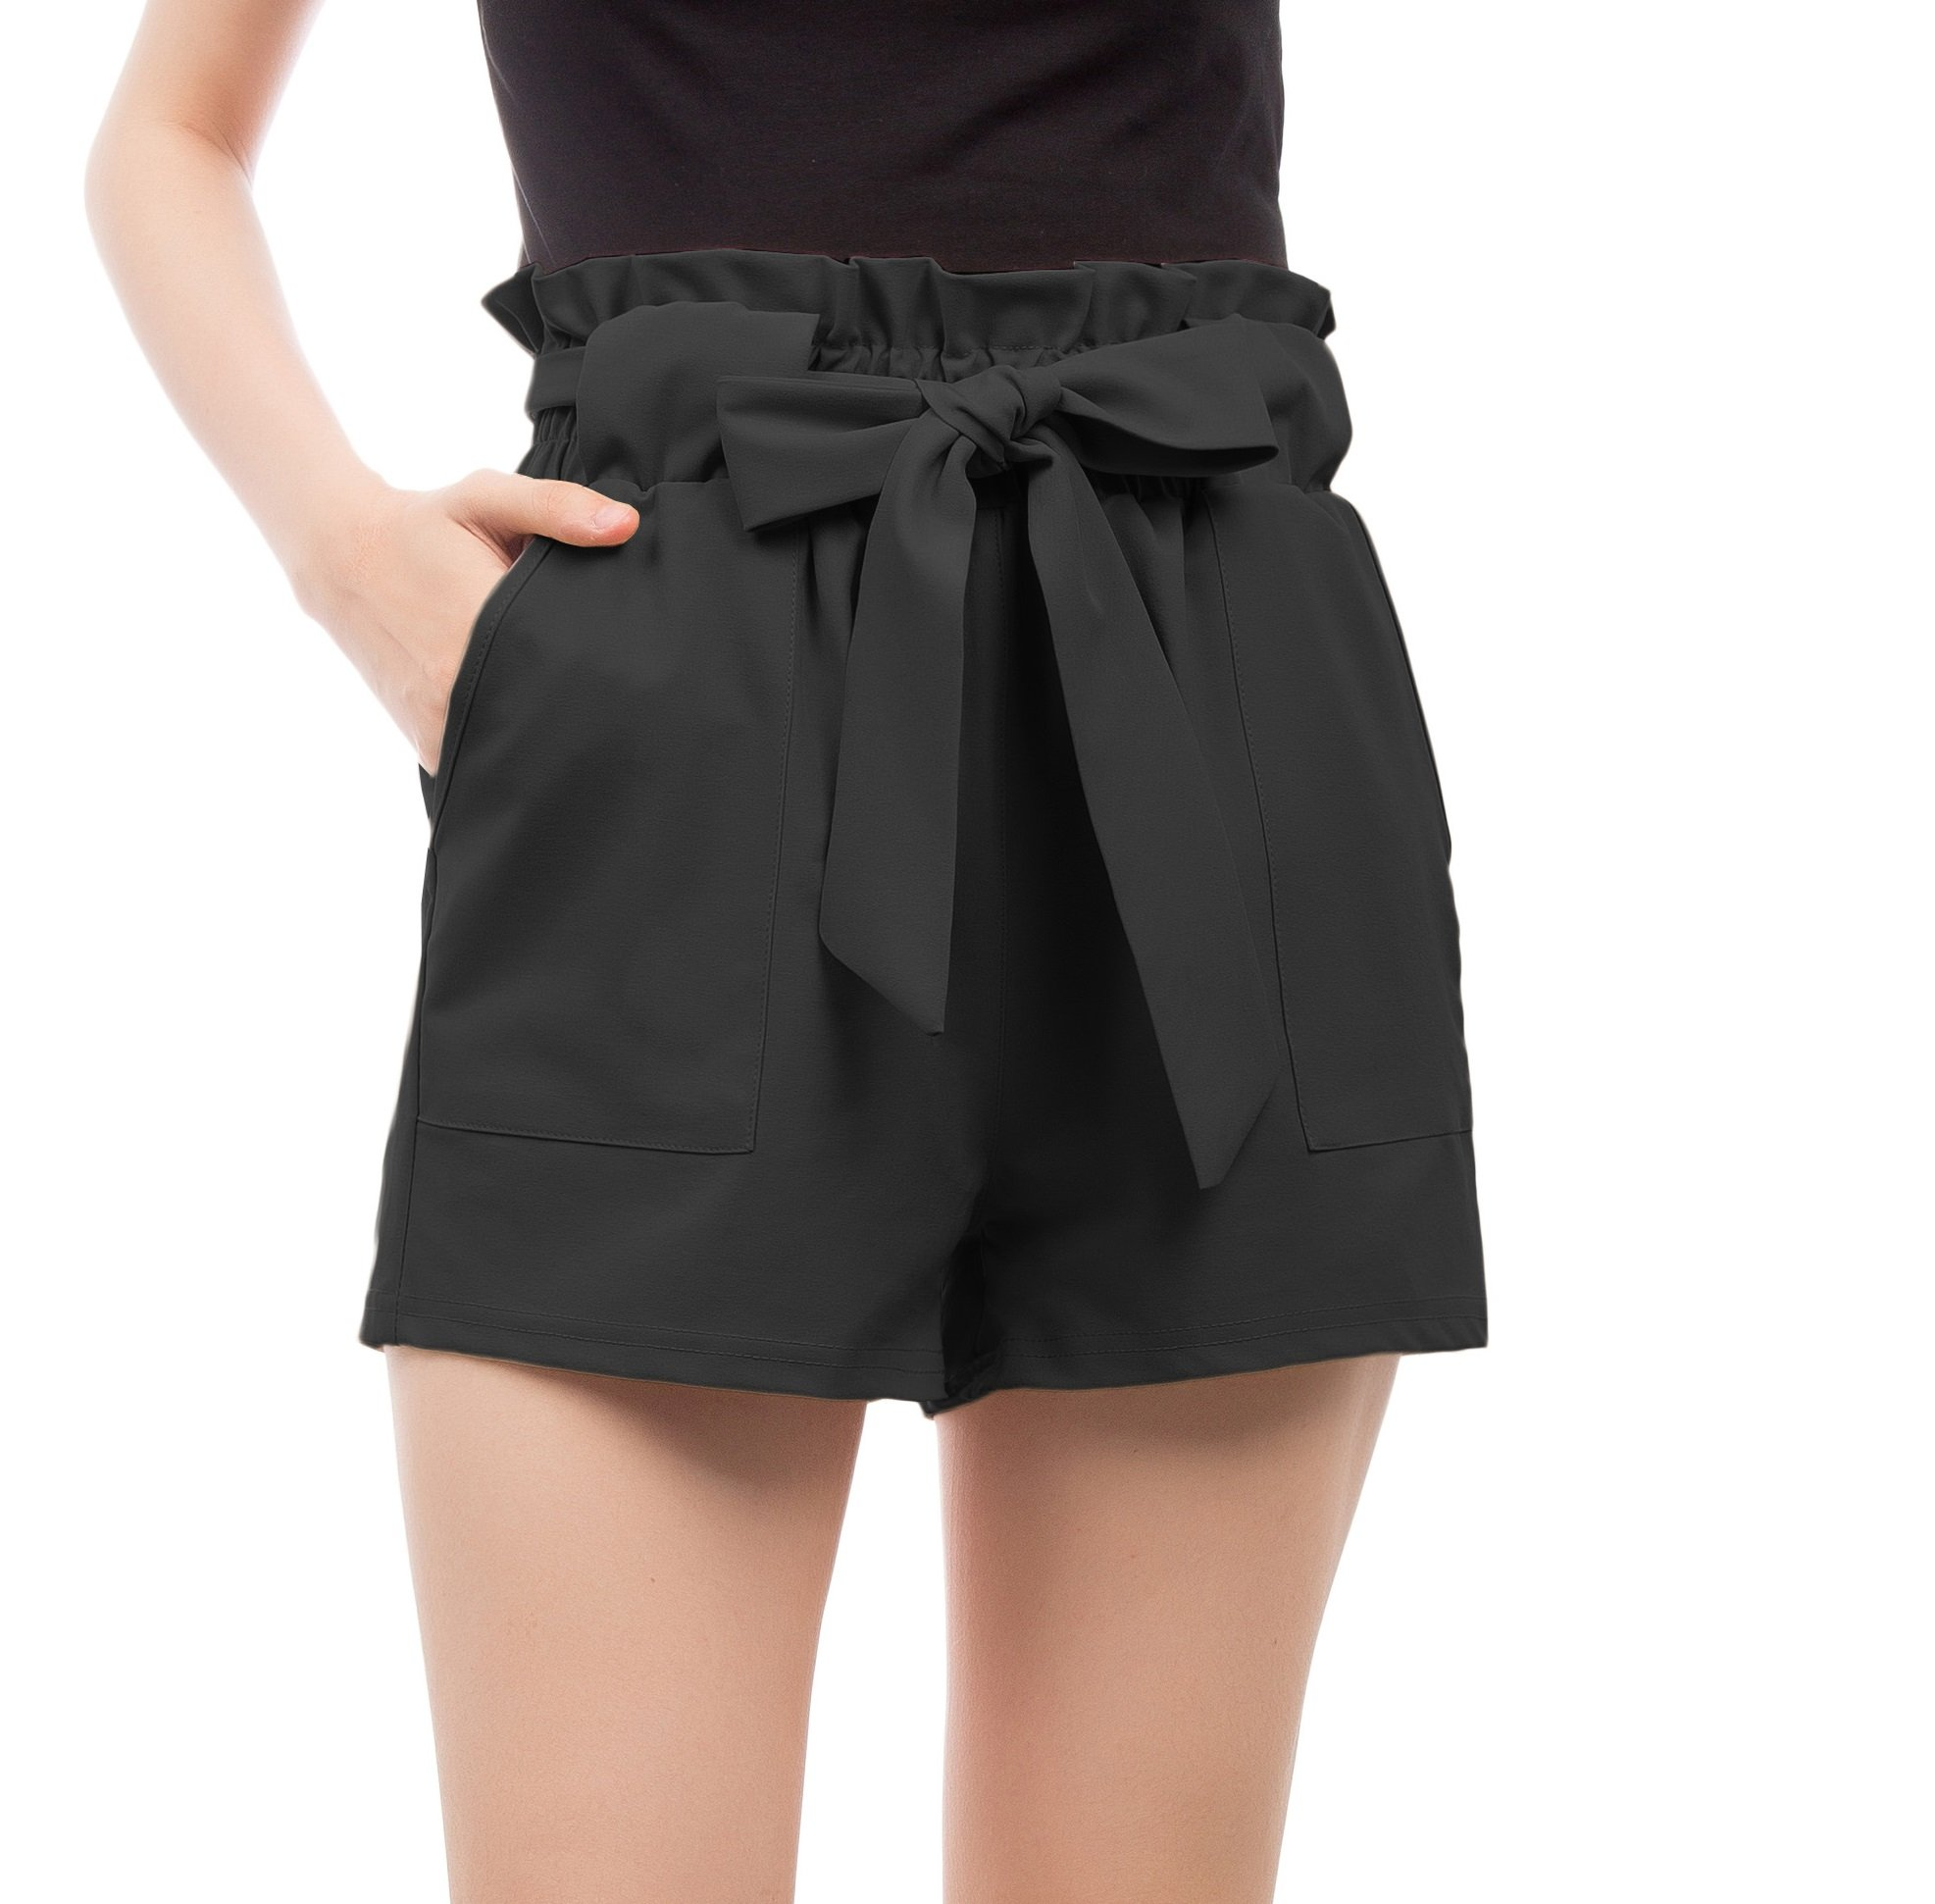 GRACE KARIN Women Casual High Waist Summer Beach Short Pants S Black-2